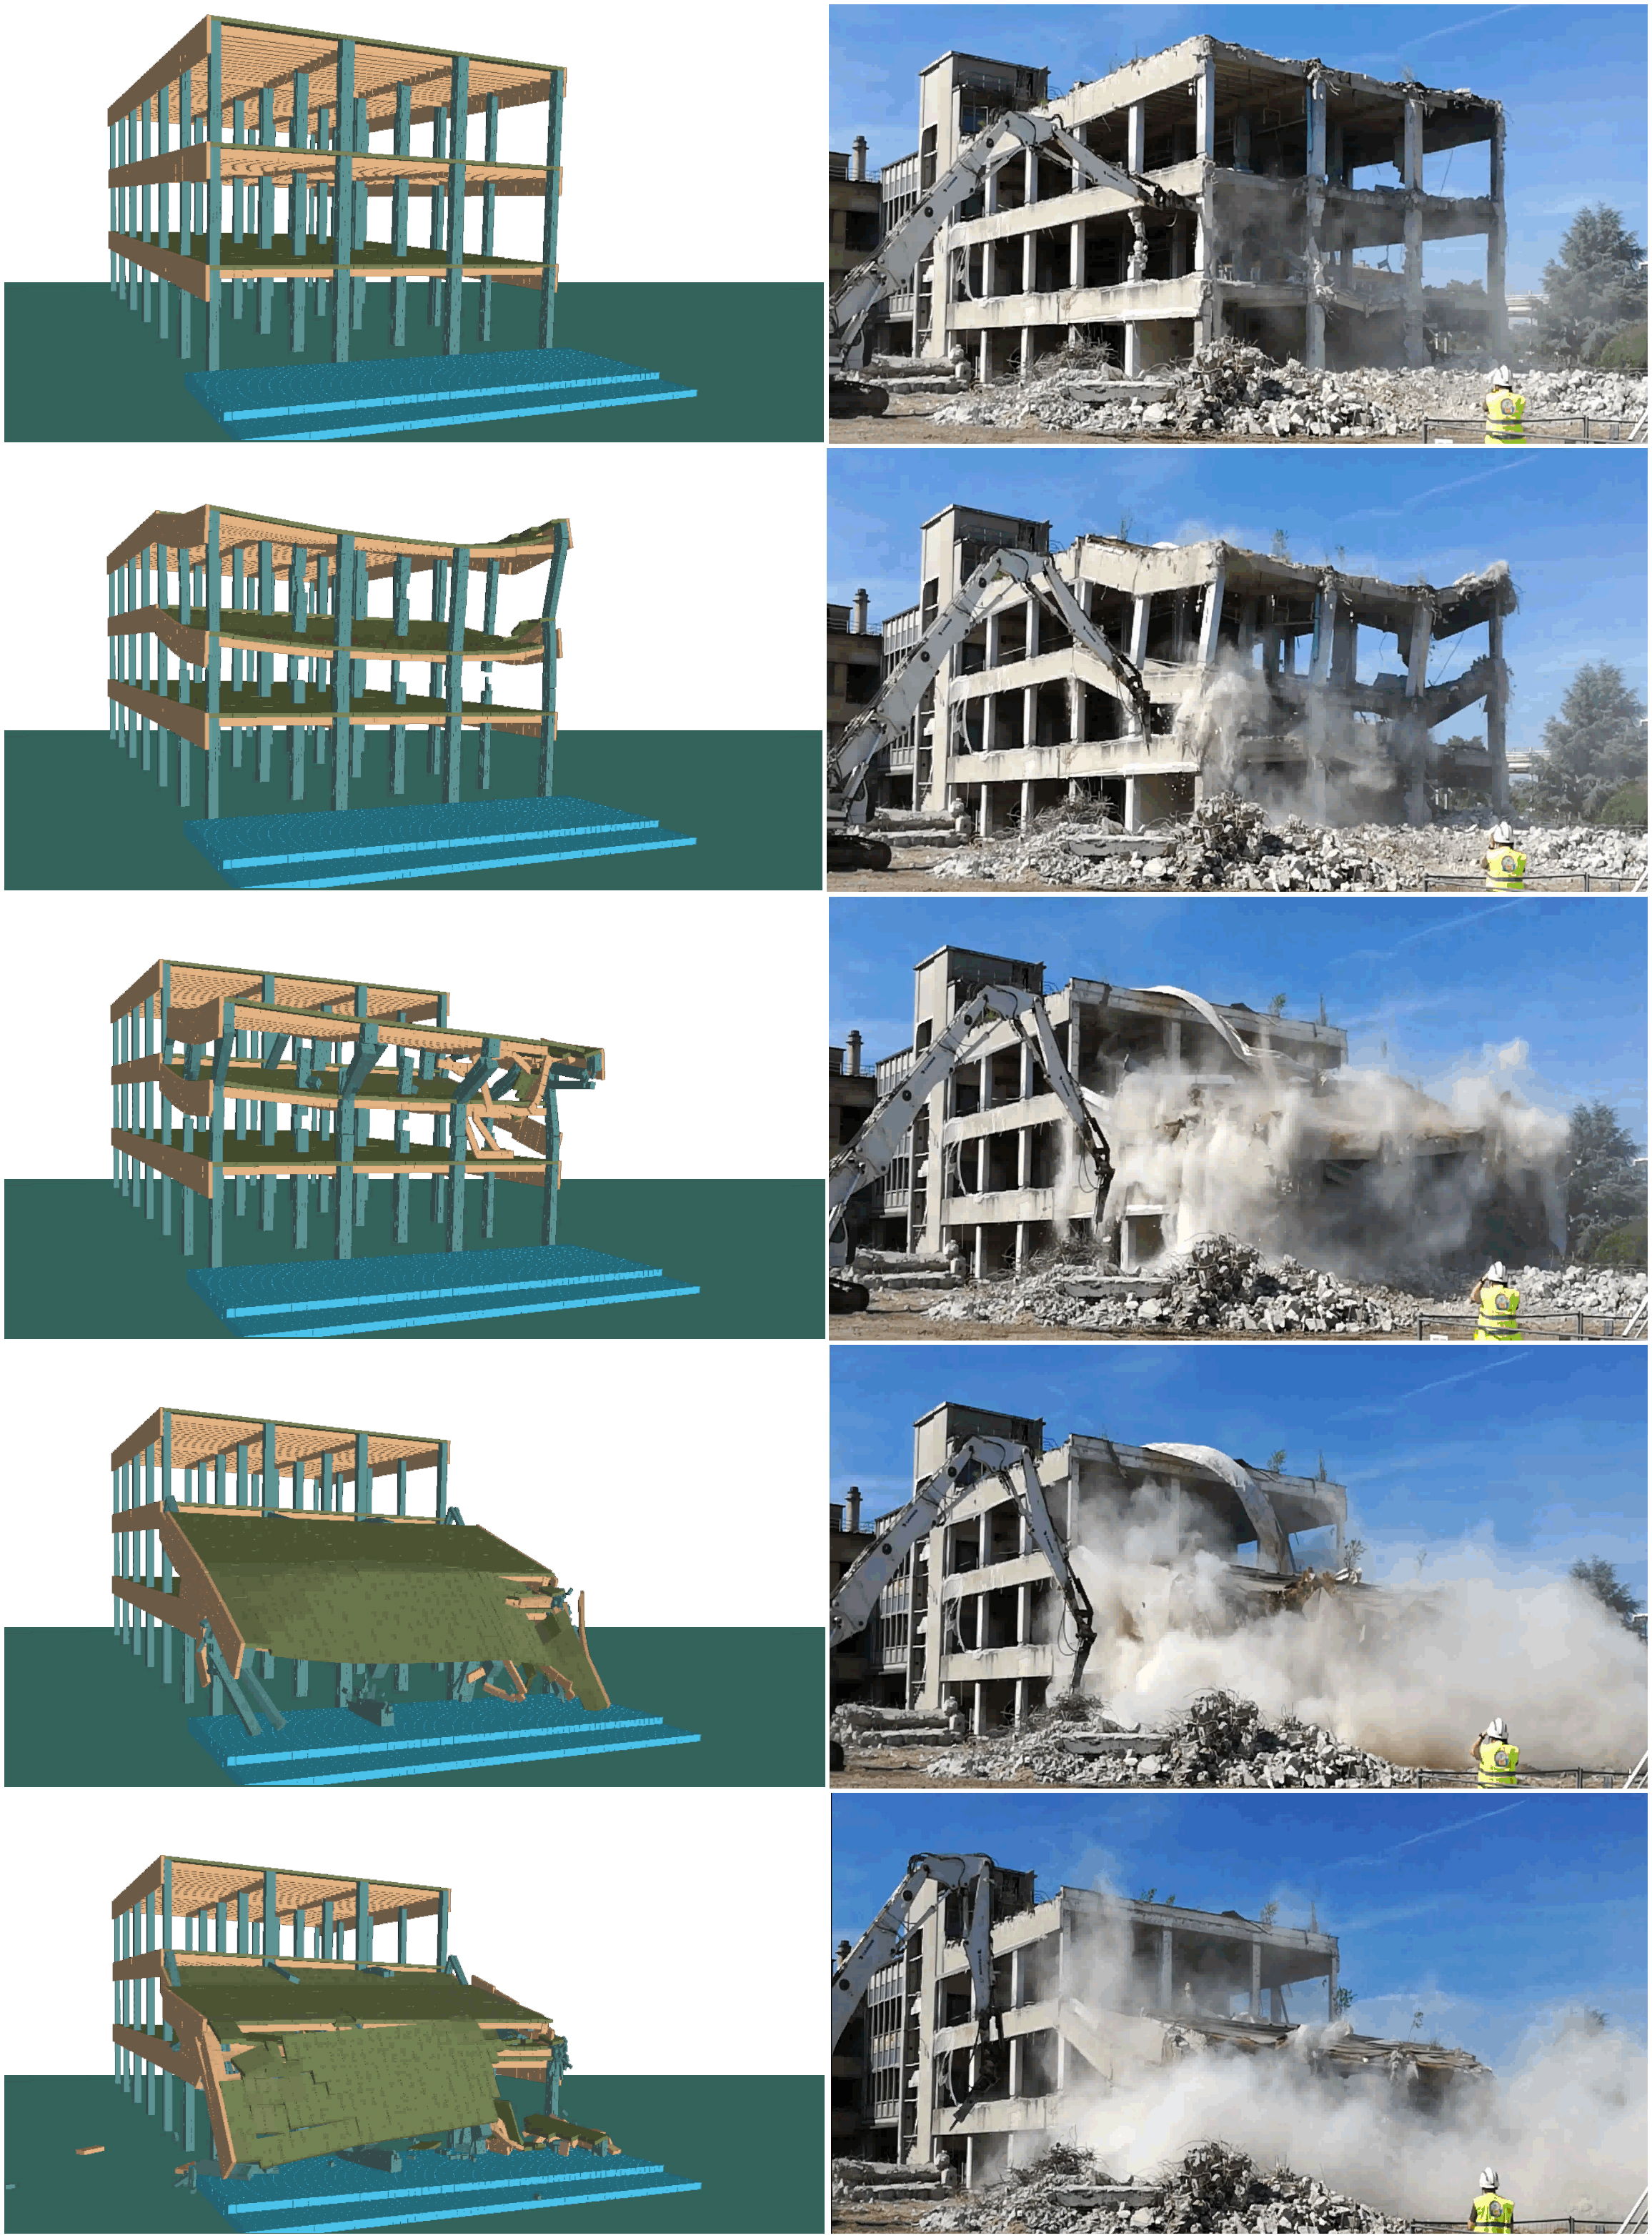 Side-by-Side Comparison of ELS Simulation and Actual Demolition